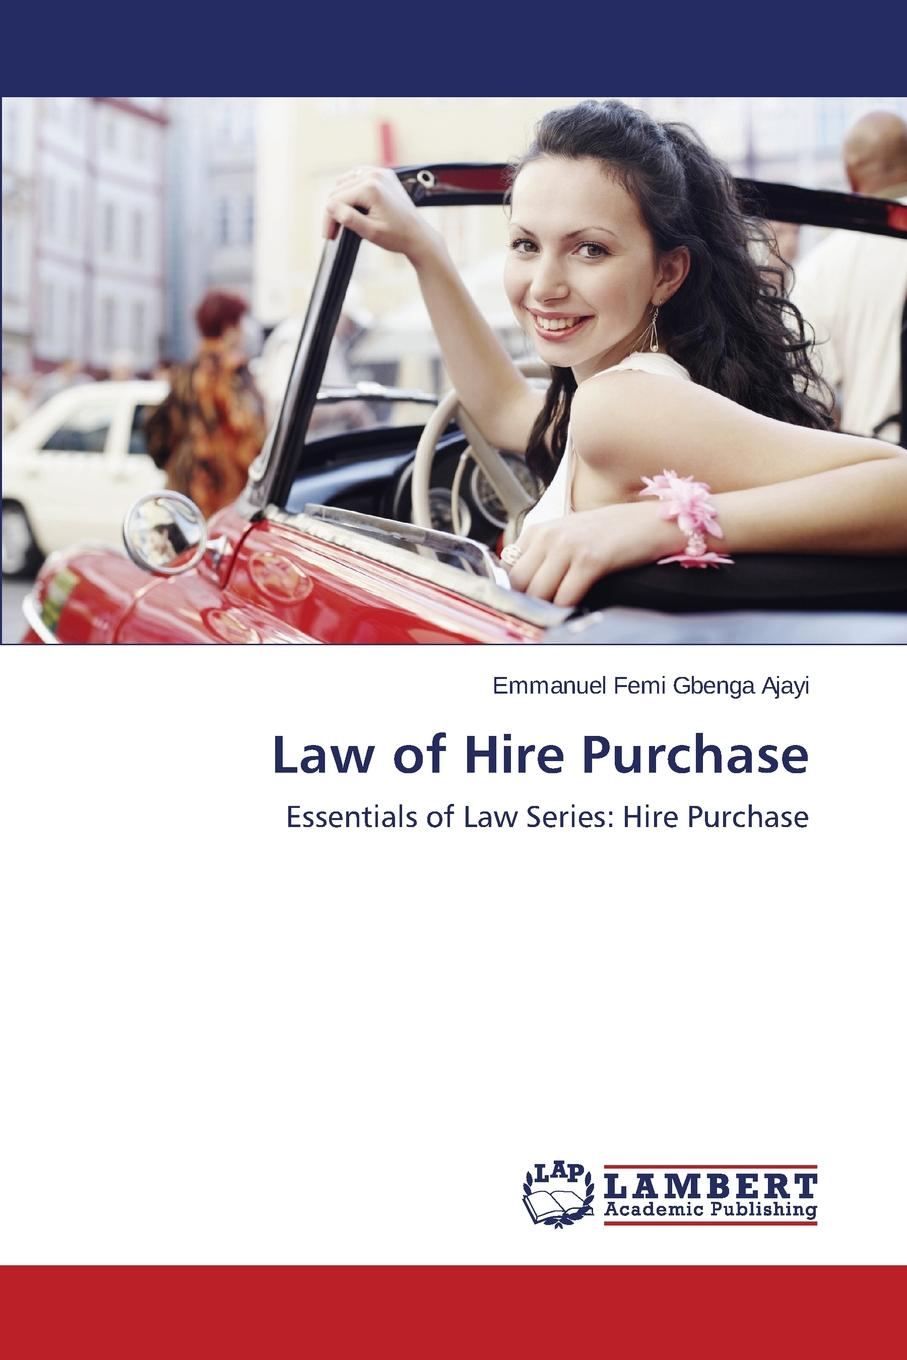 Ajayi Emmanuel Femi Gbenga Law of Hire Purchase original 1pcs byv20 40 goods in stock